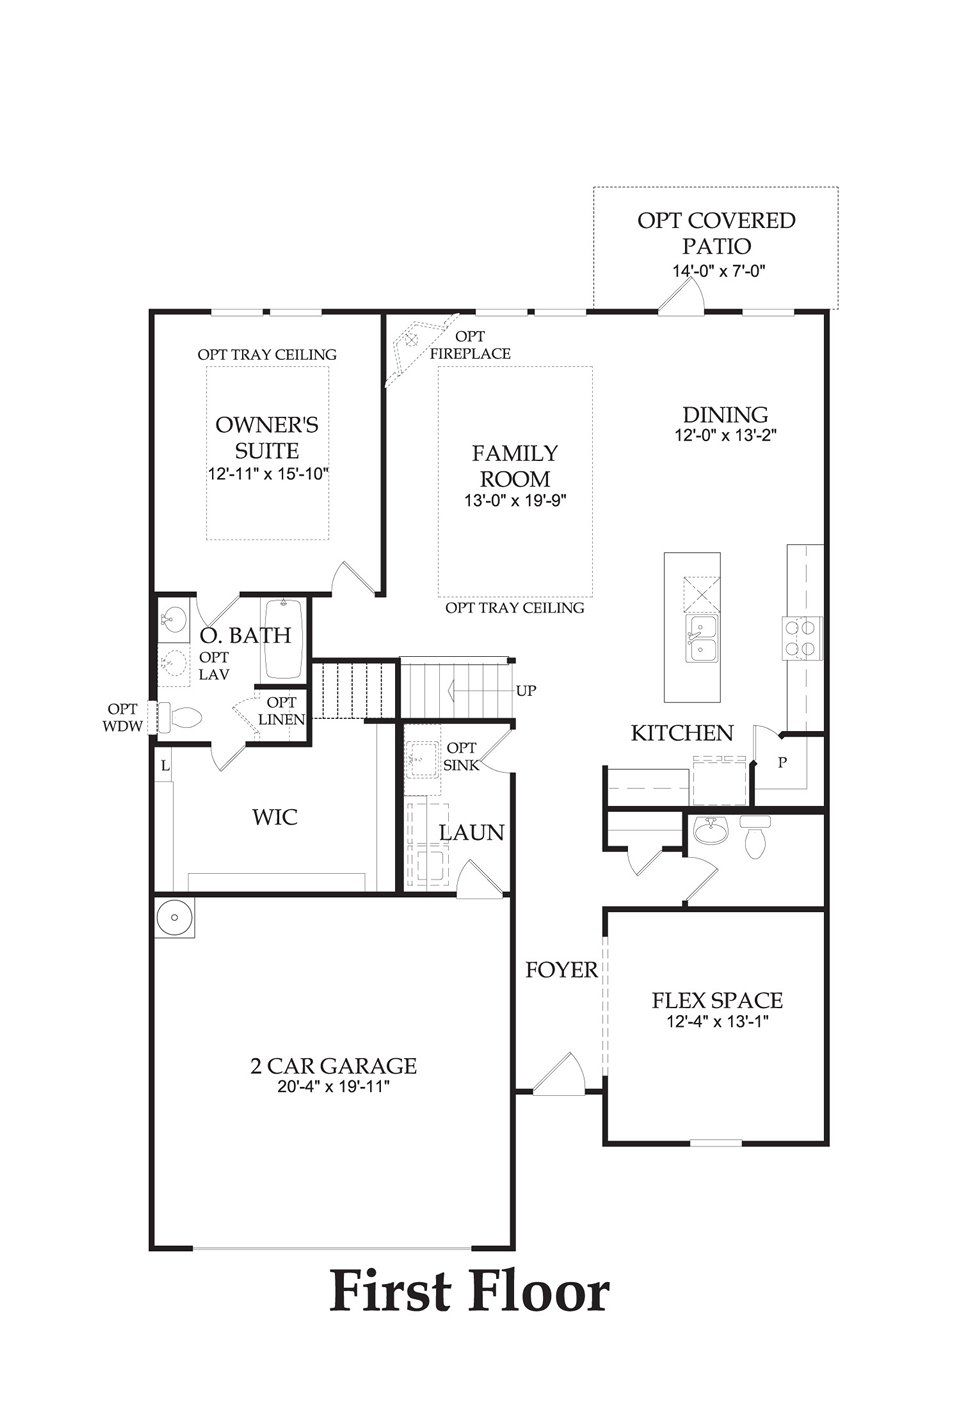 Stirling Bridge Austin Tx New Homes Centex Homes Claypool Floor Plan 2791 Sq Ft 4 5 Bedrooms 2 5 3 5 Baths Model Homes How To Plan Floor Plans